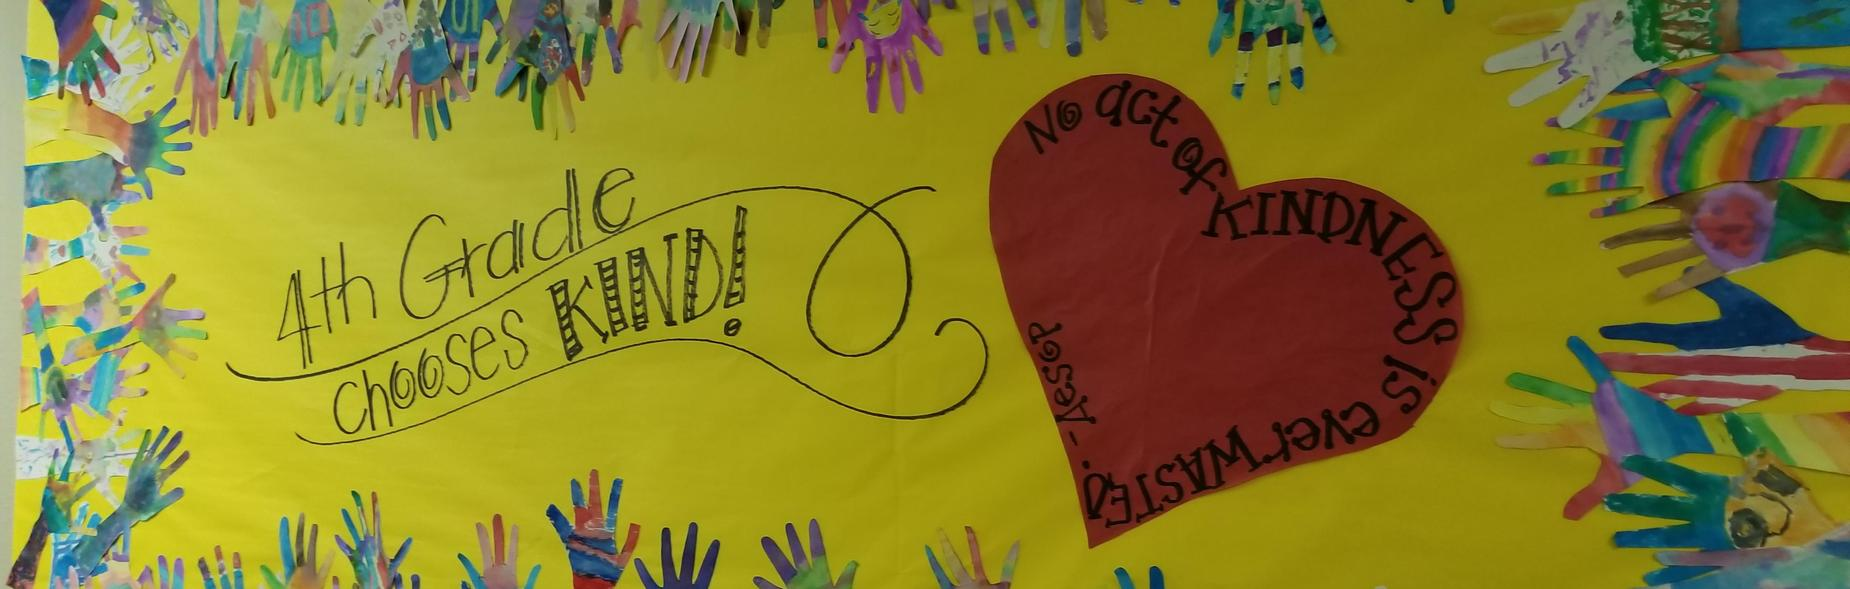 Banner with heart and hands